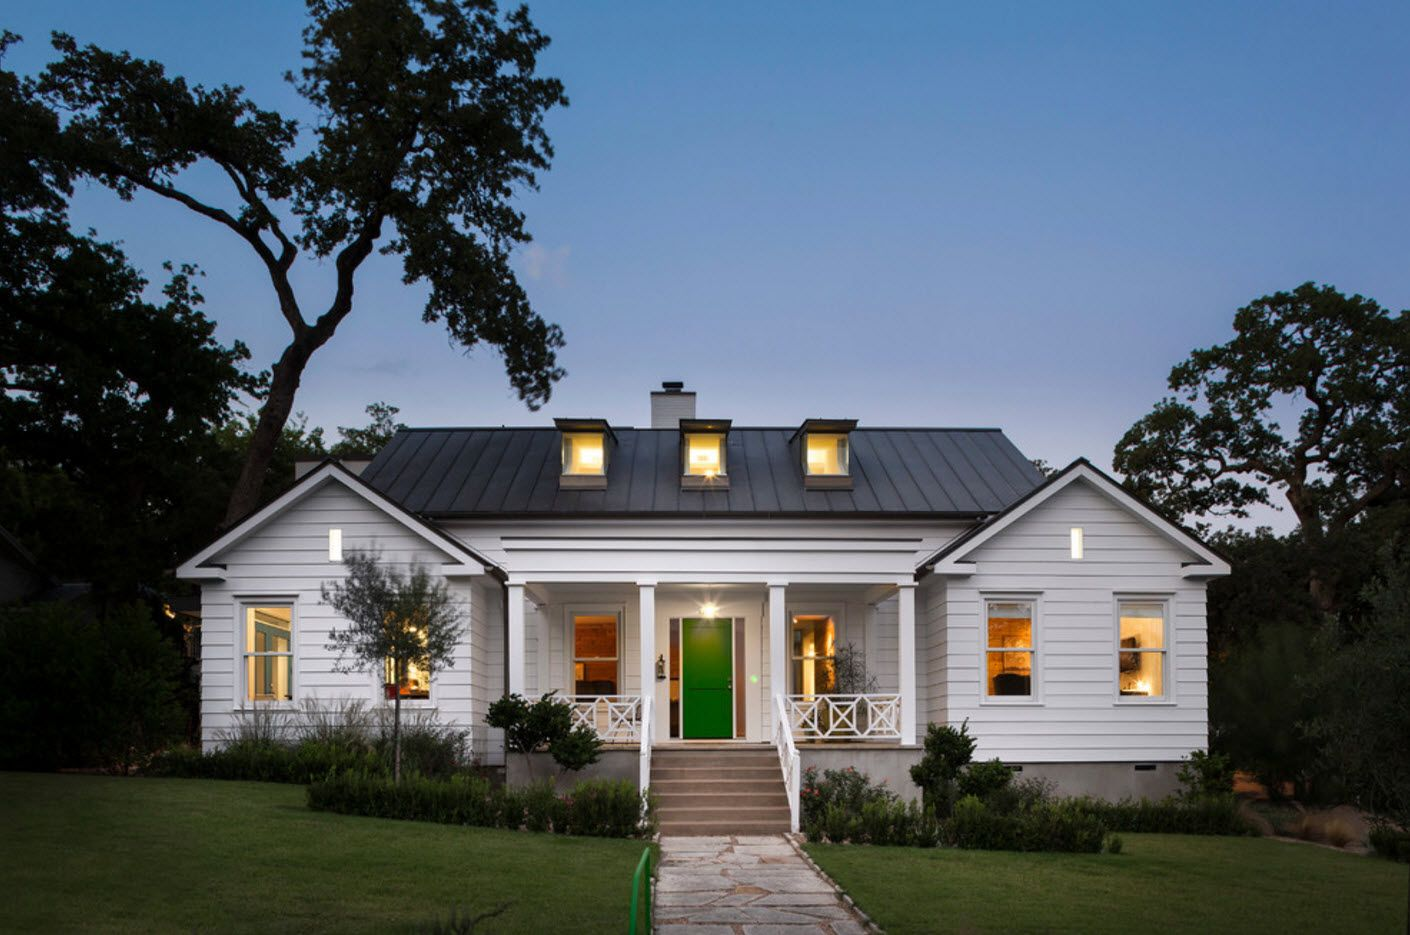 Modern suburban cottage with two porches